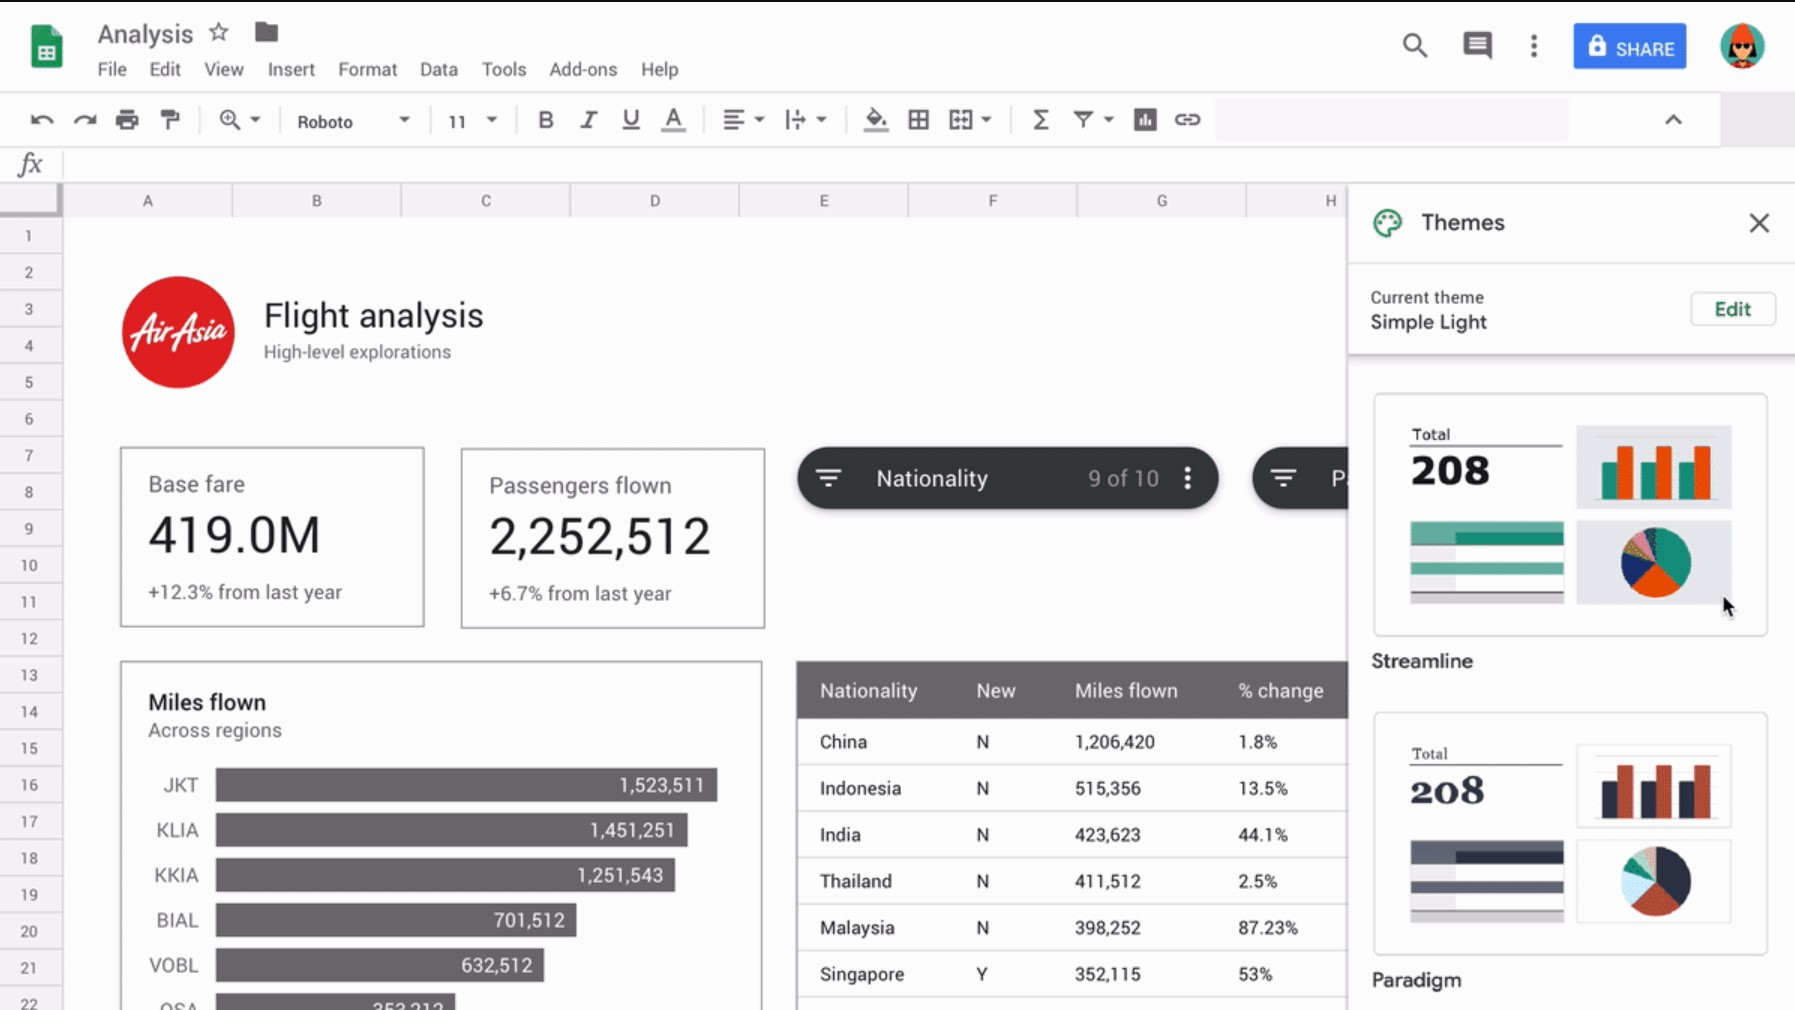 Google Sheets introduces Slicers, Scorecards, and Themes for more effective data visualization